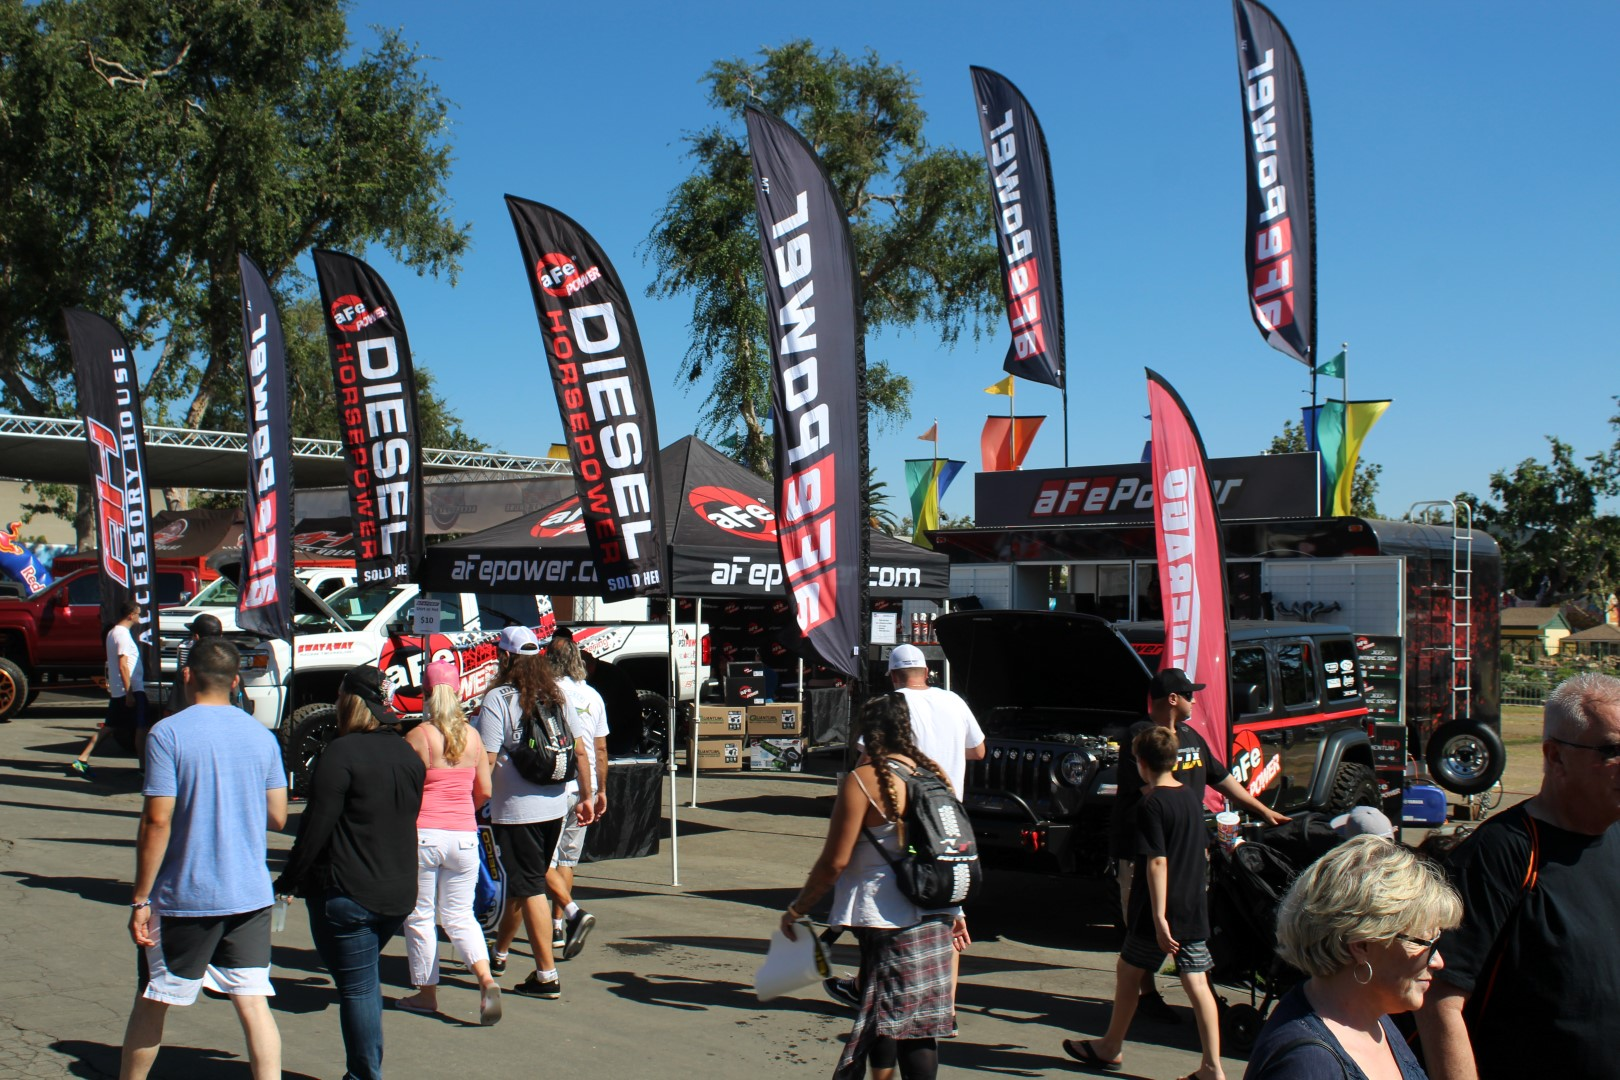 aFe POWER at Off Road Expo 2018 | aFe POWER